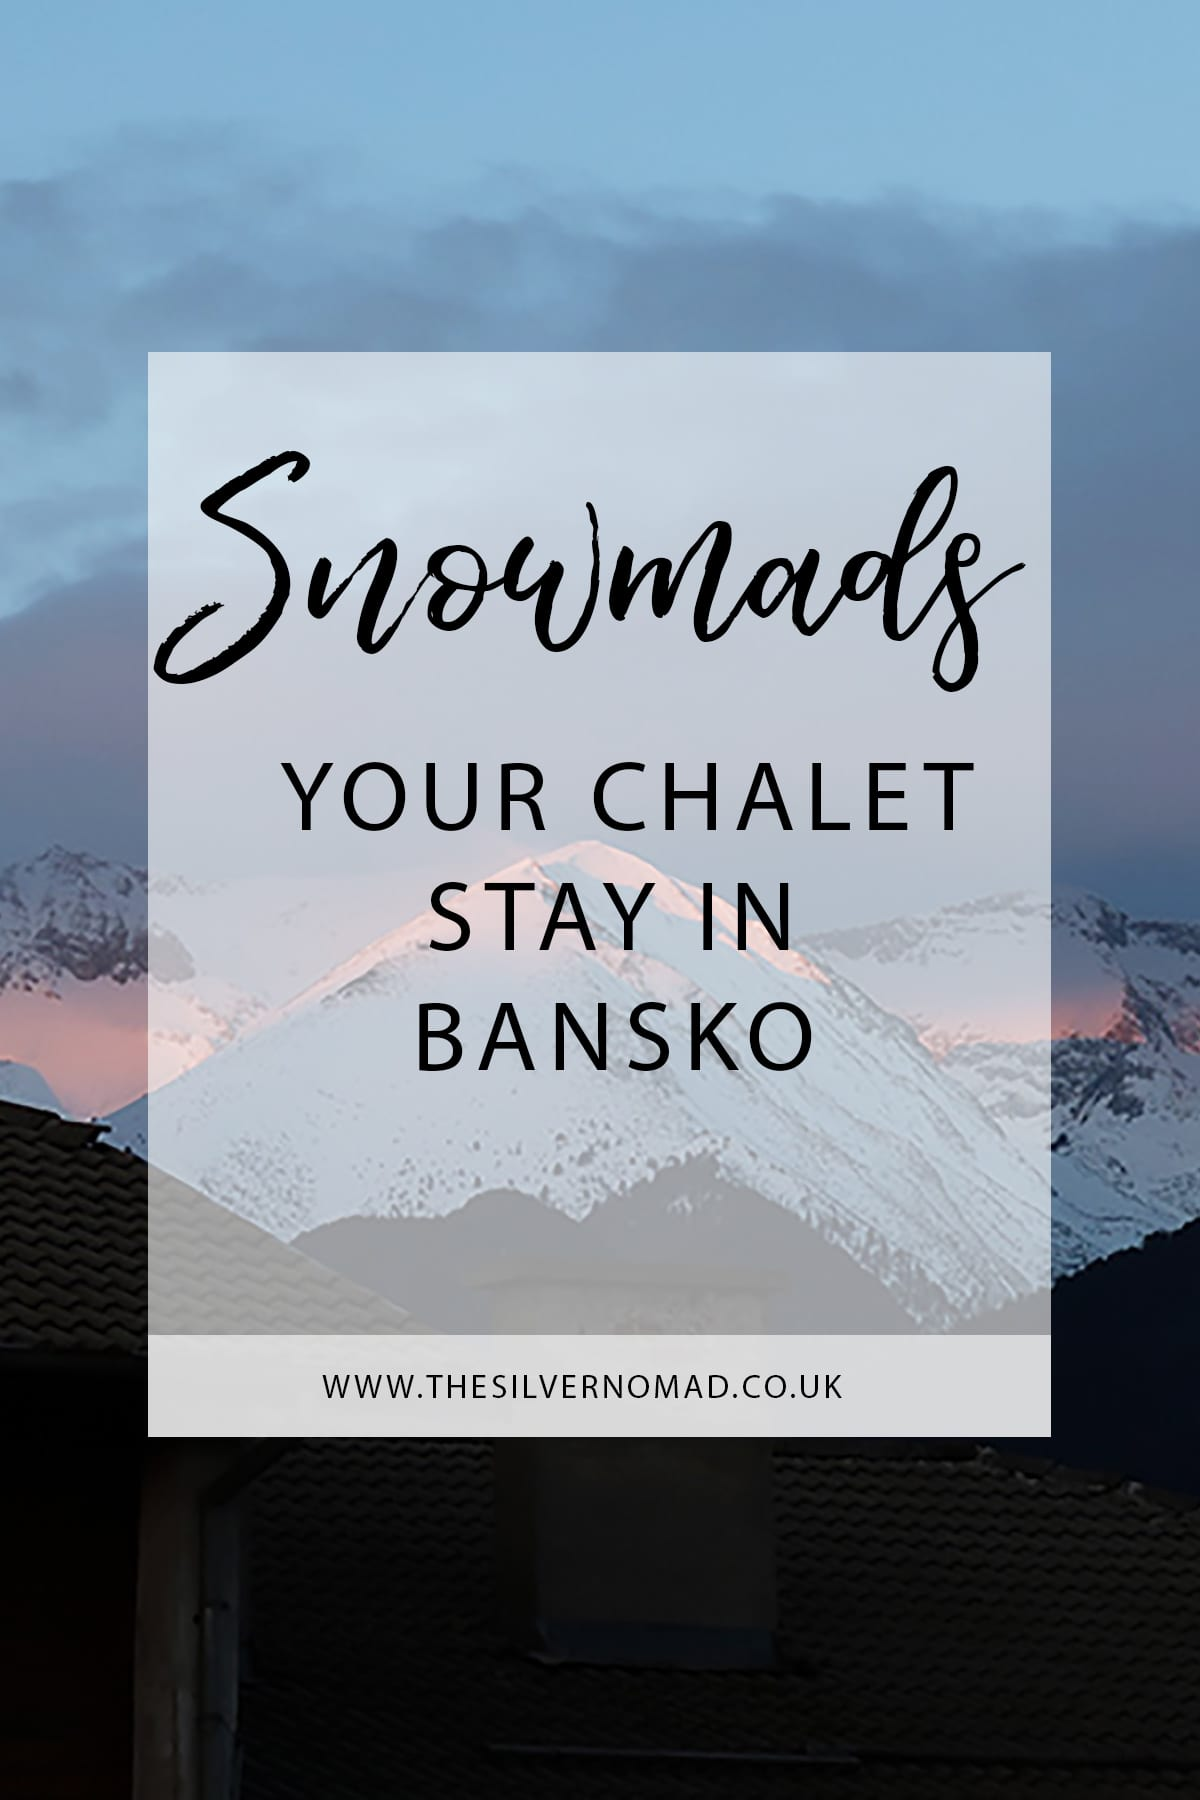 Snomads Your Chalet stay in Bansko